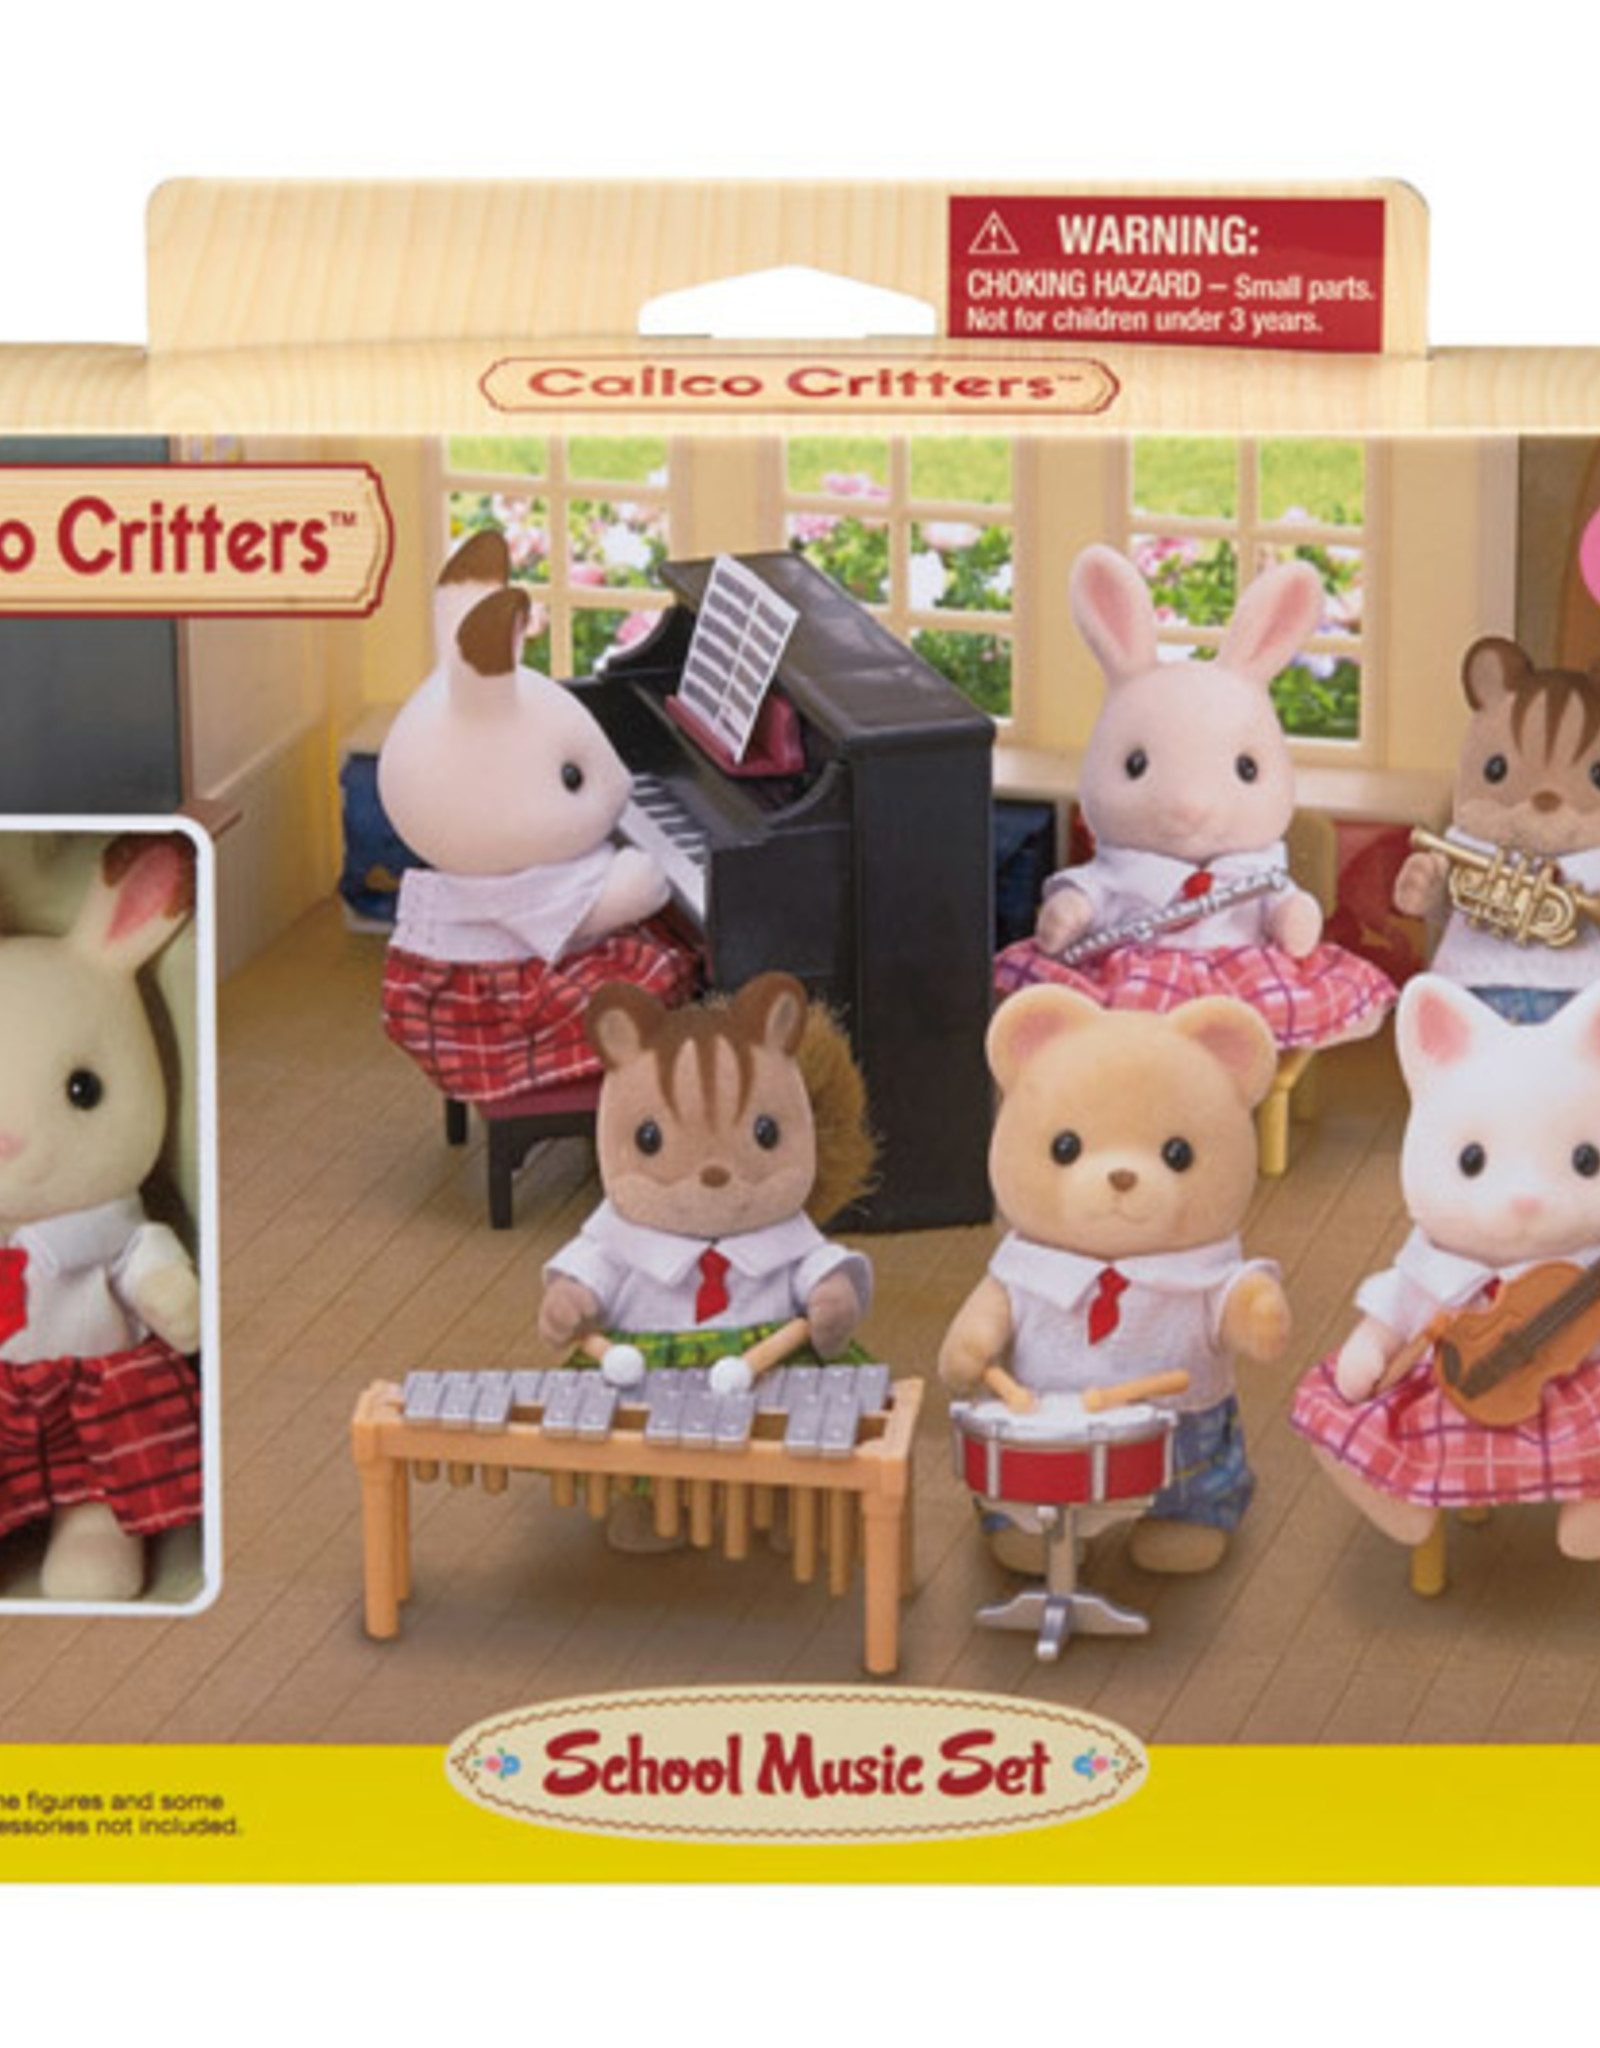 Calico Critters CC School Music Set